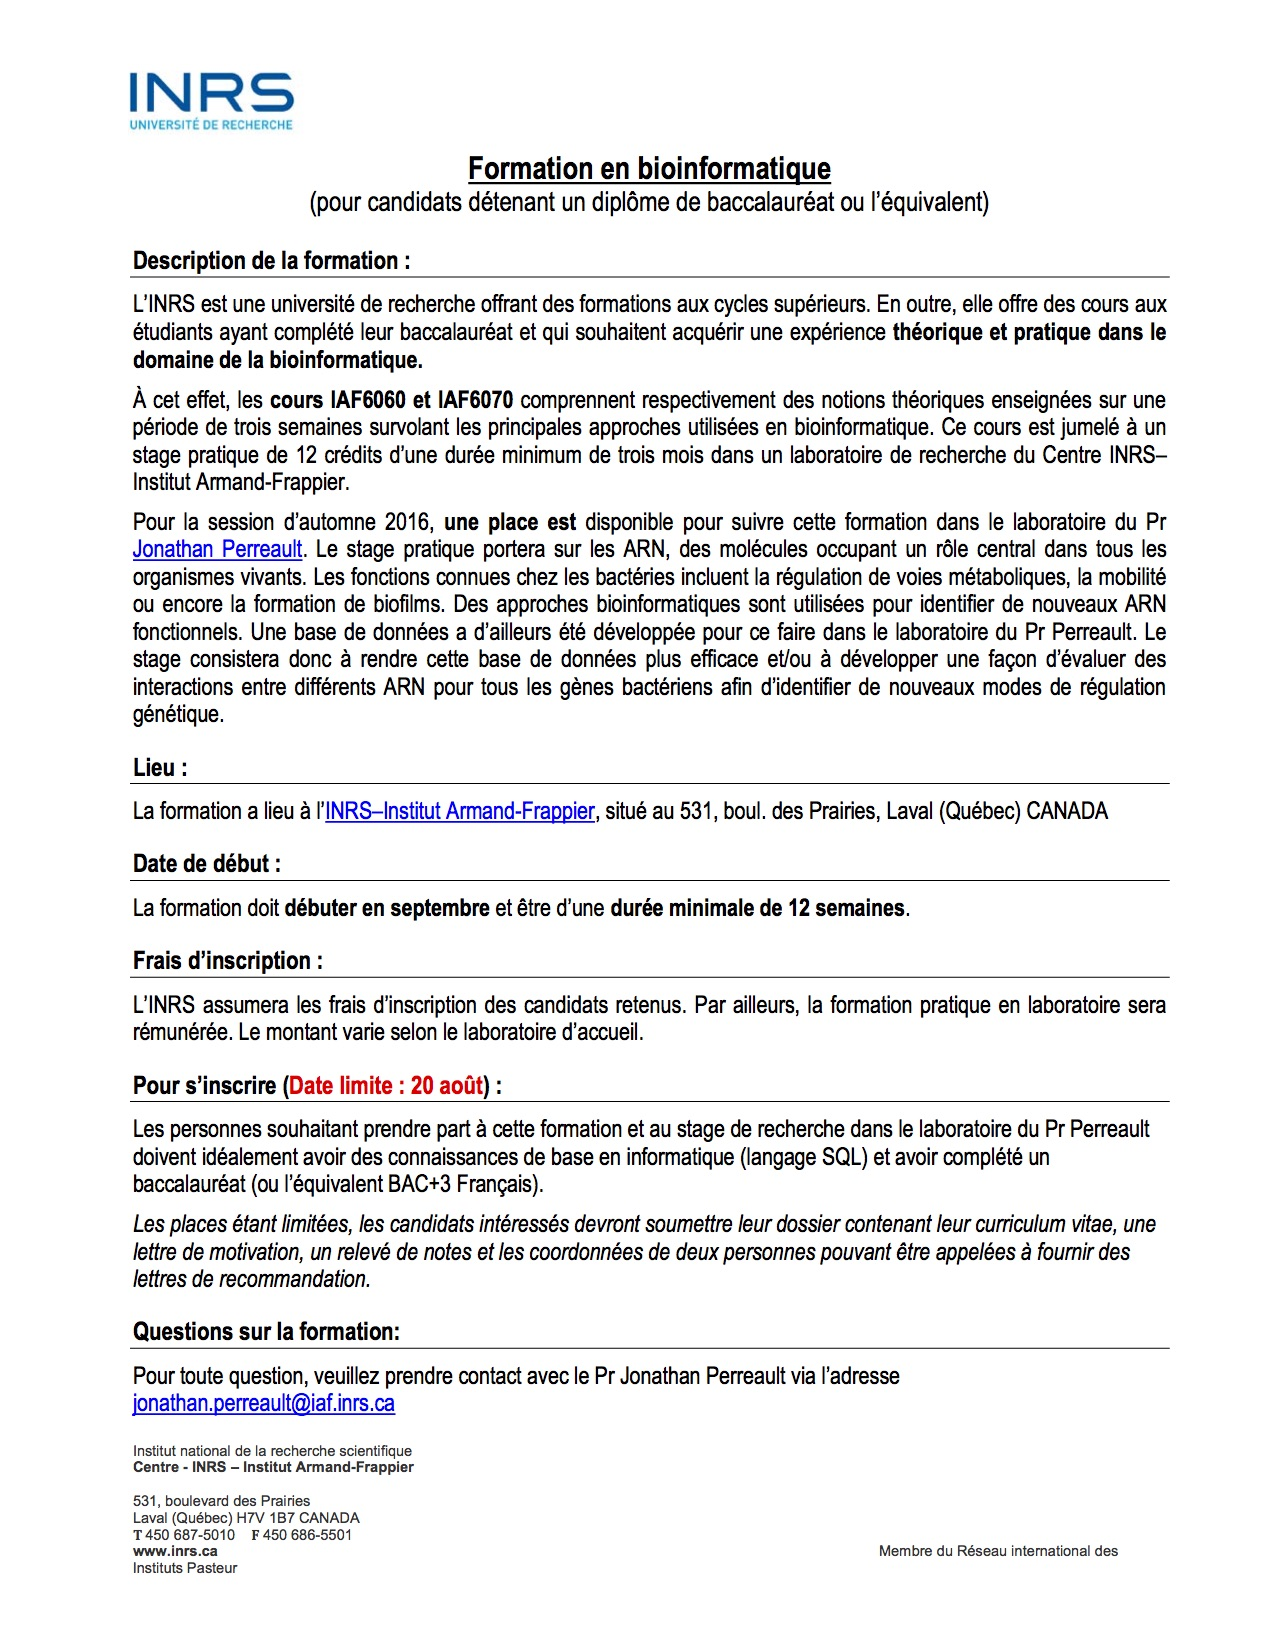 annonce_stagiaire-cours-bioinfo_2016_VF